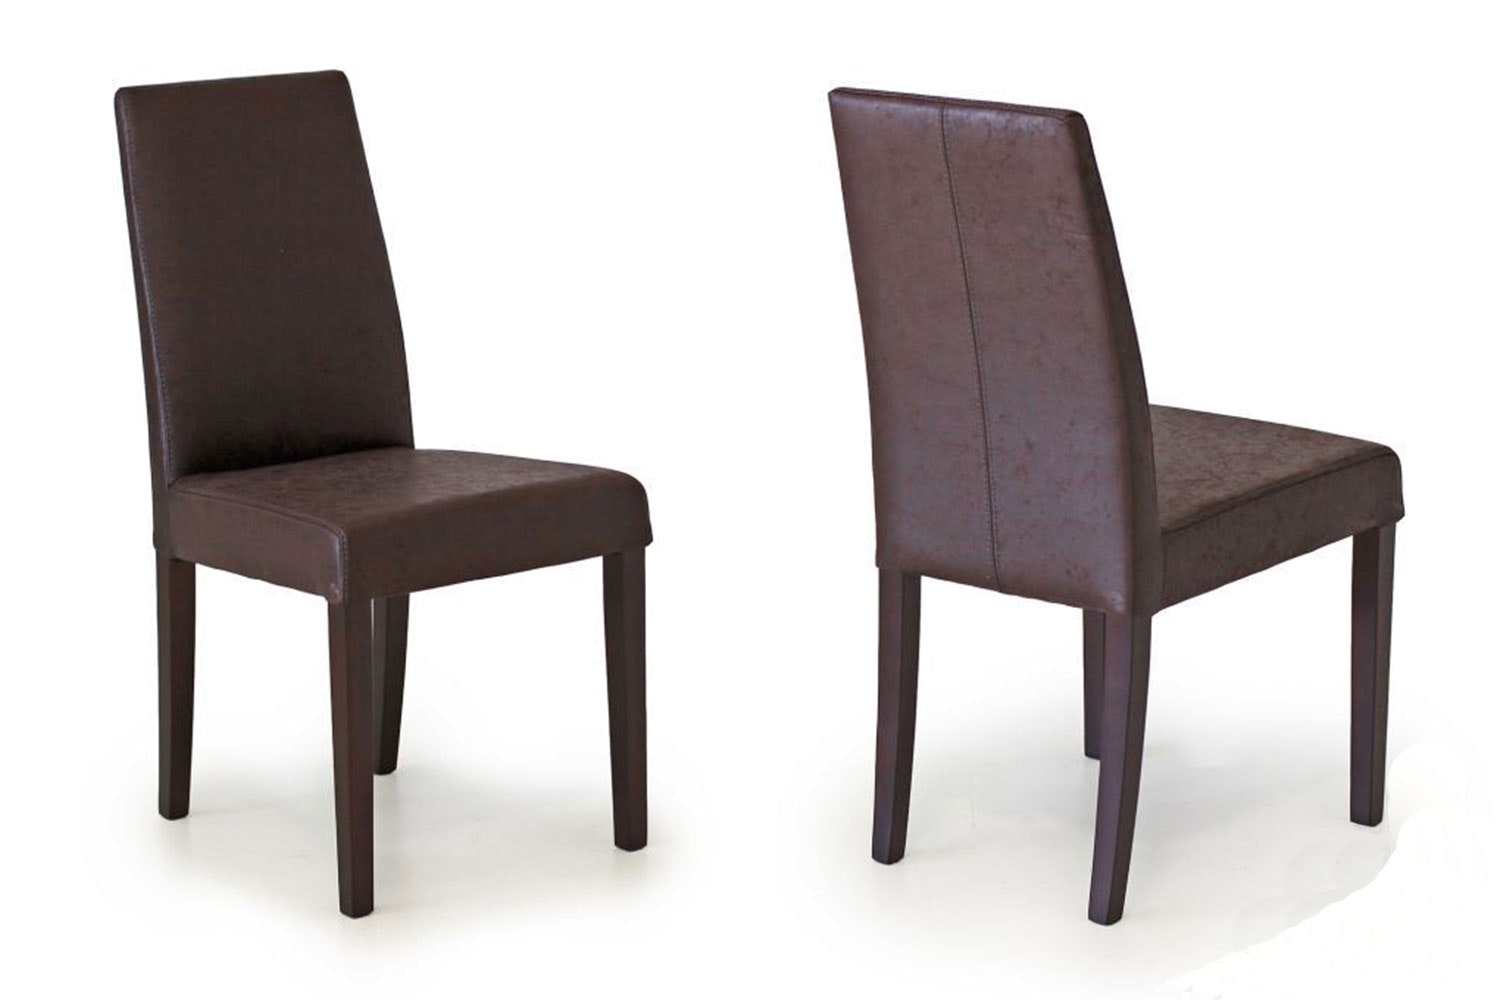 Phlex2 Dining Chairs by Collage